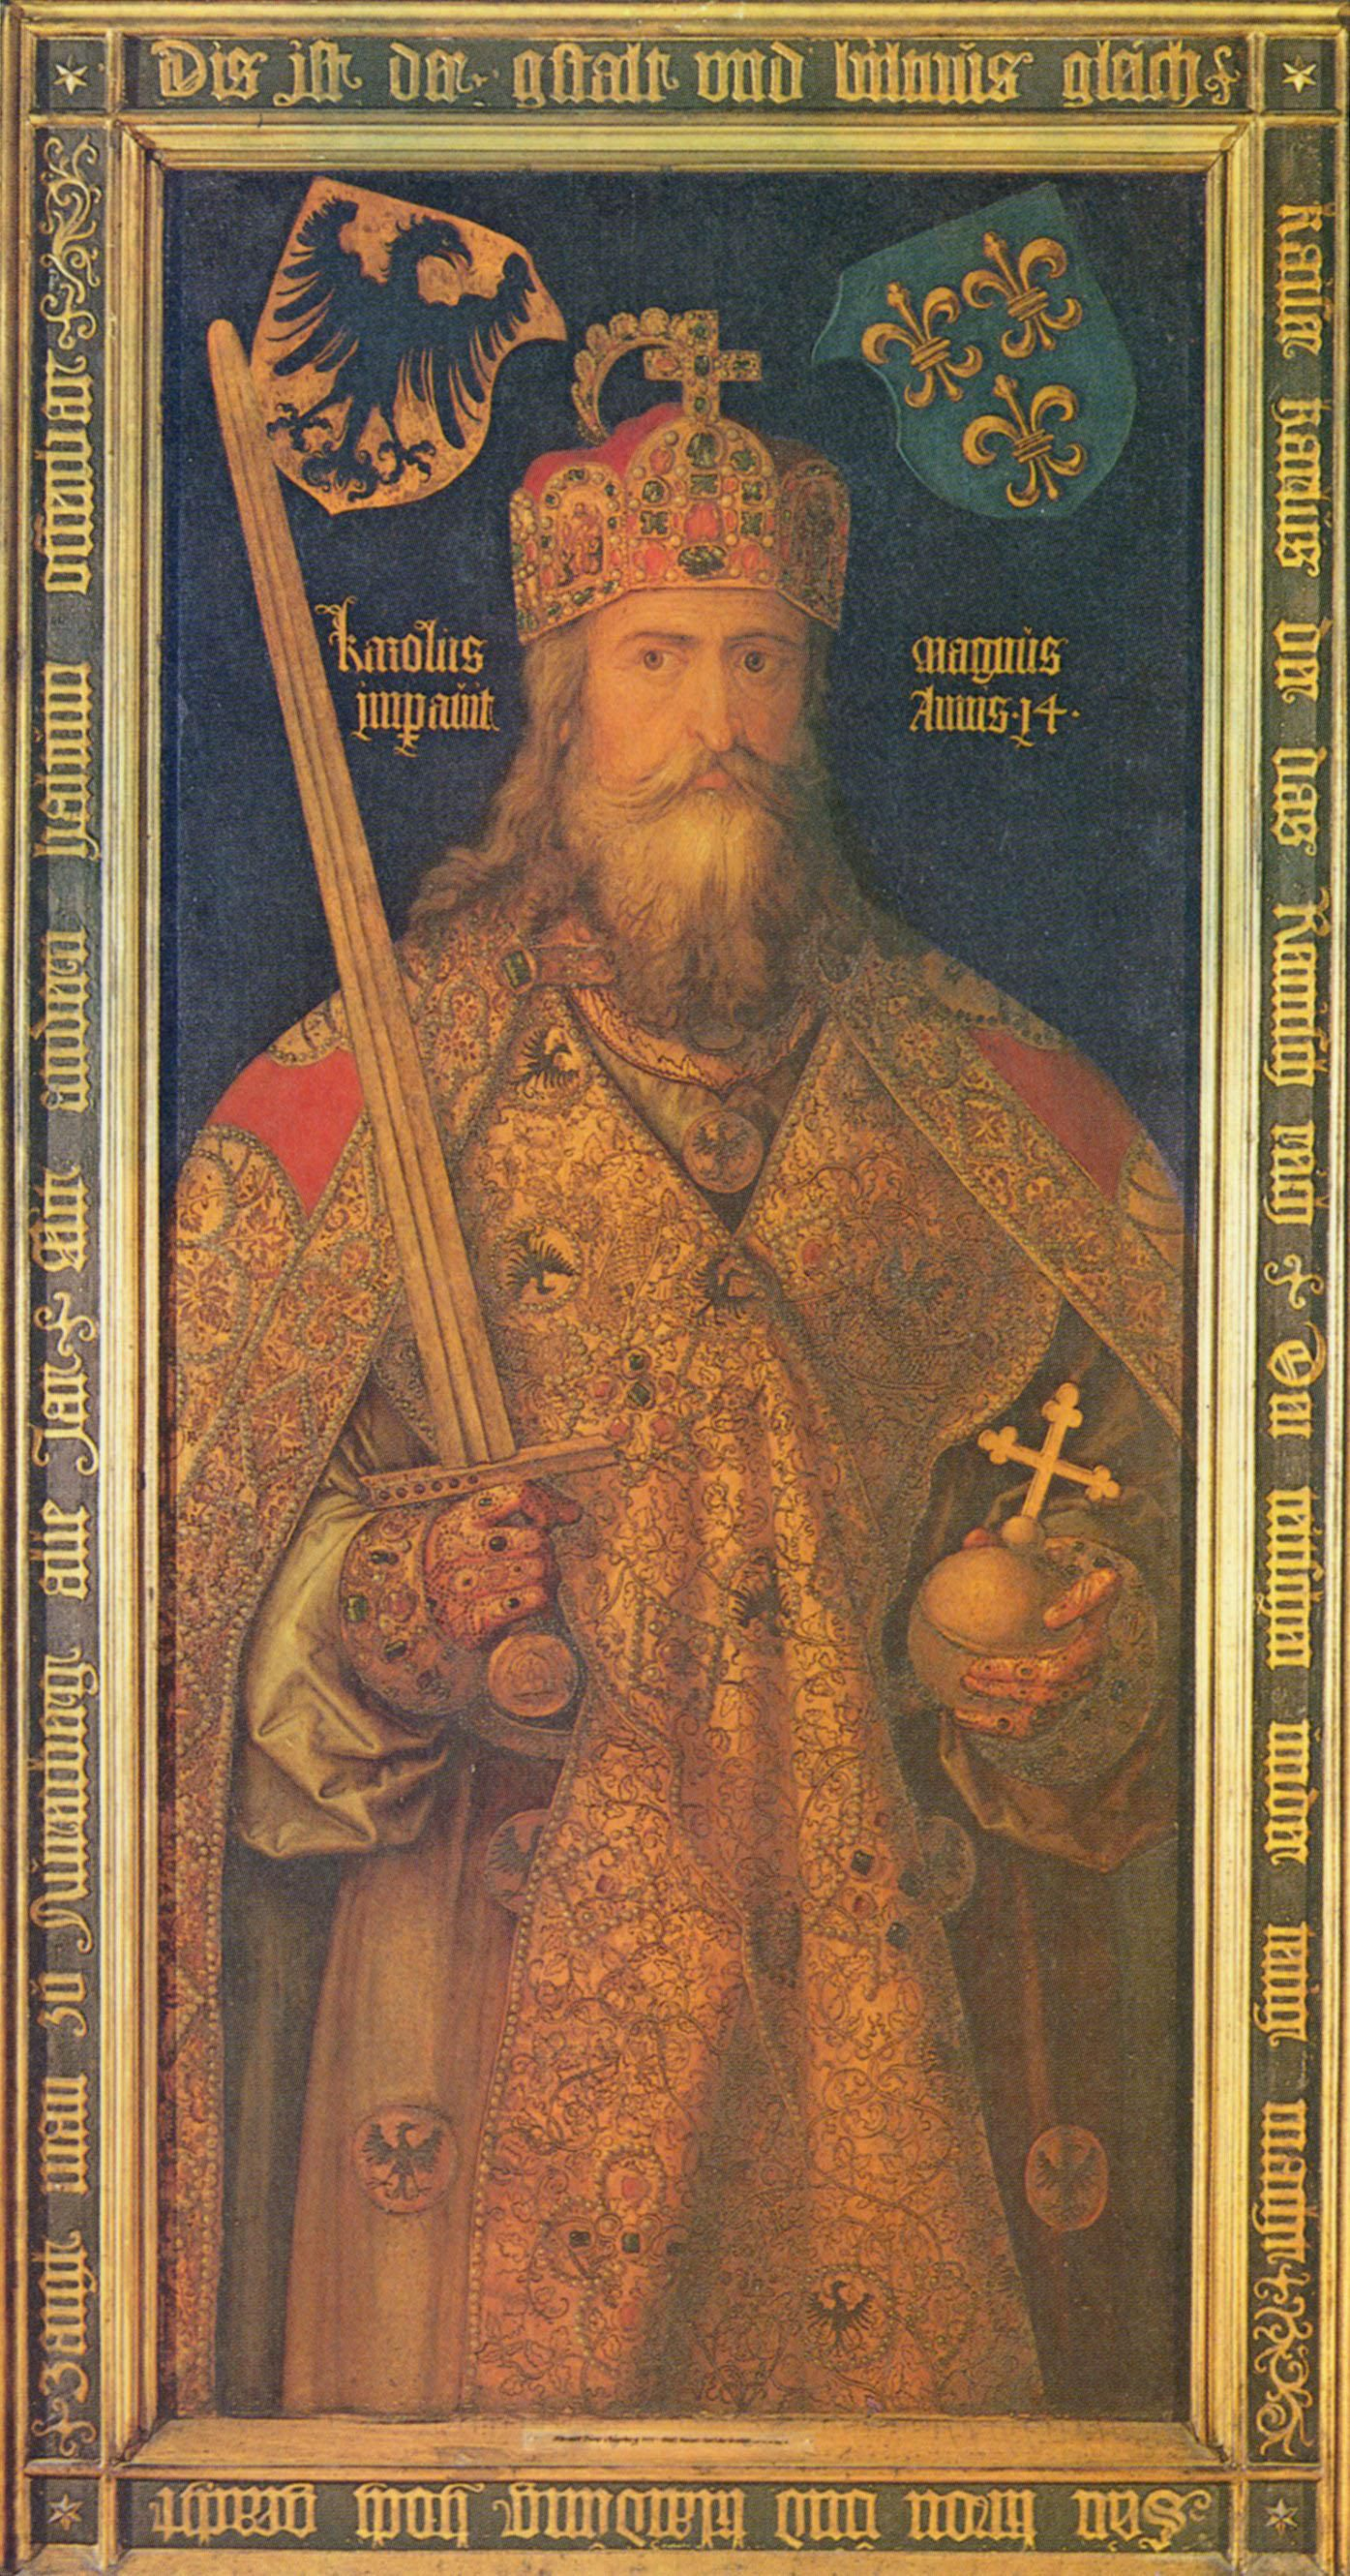 Charlemagne vs alfred the great